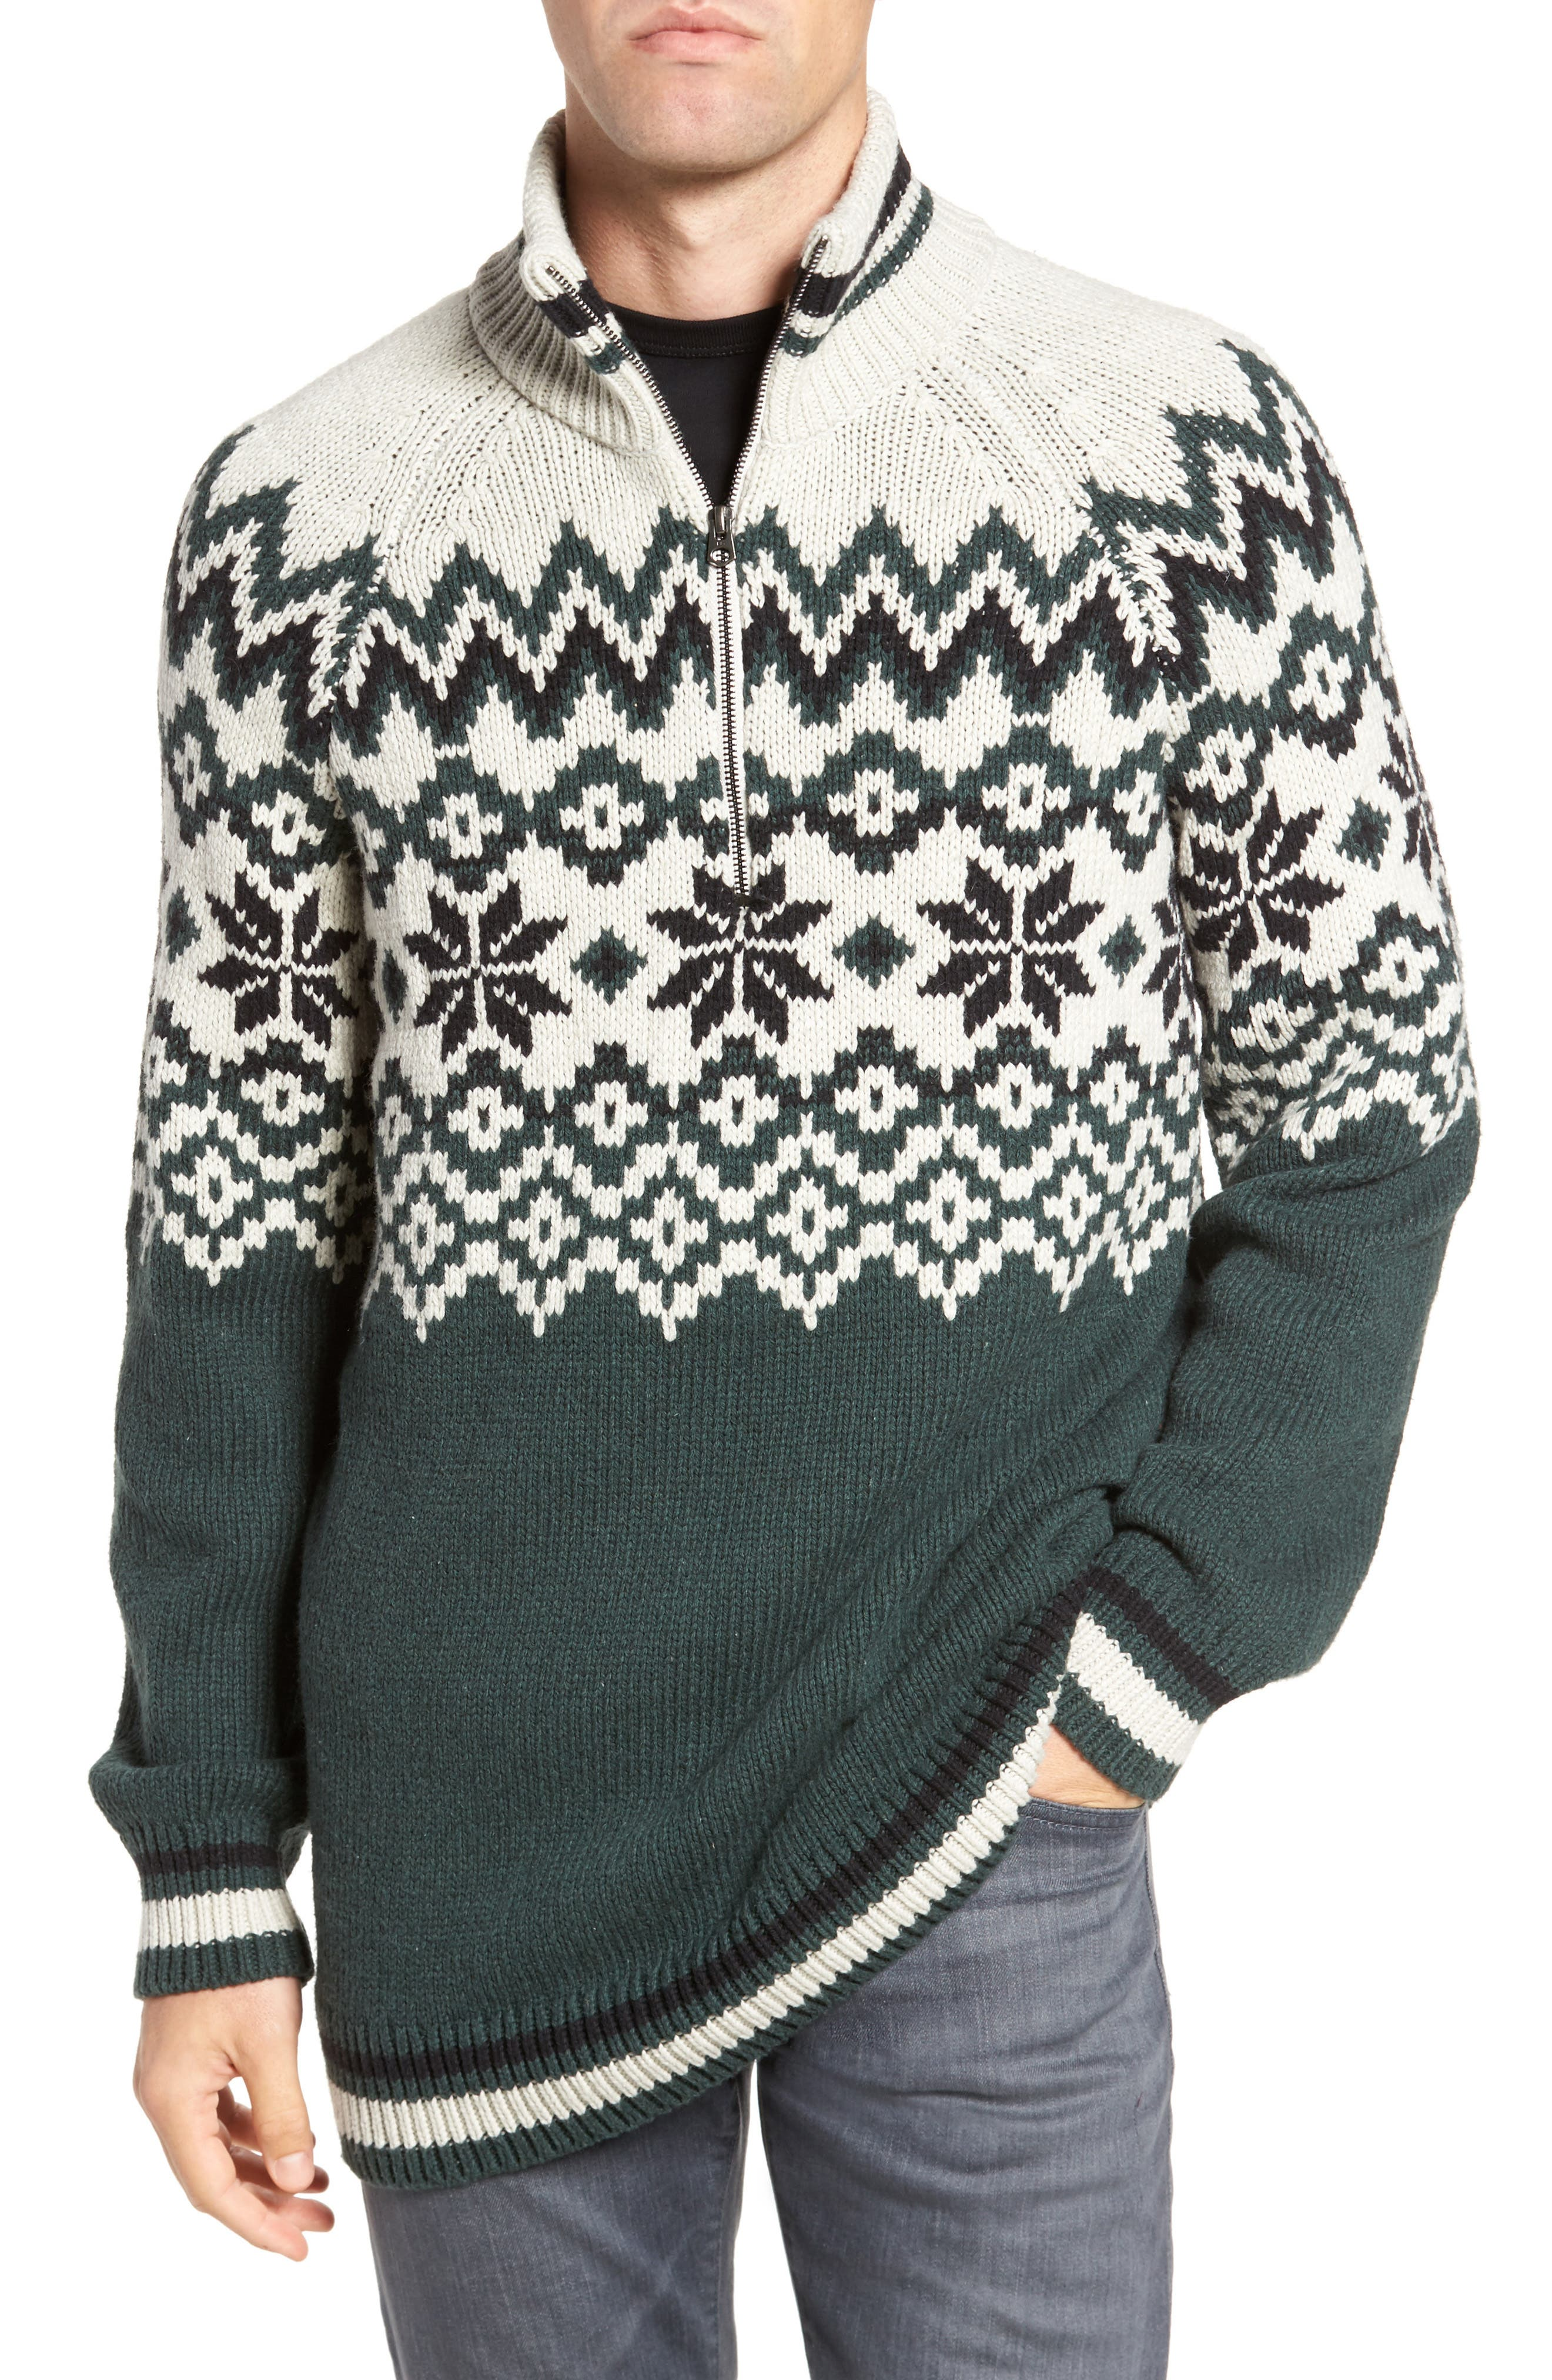 Fair Isle Ski Sweater,                             Main thumbnail 1, color,                             Clay/ Darkest Spruce/ Black